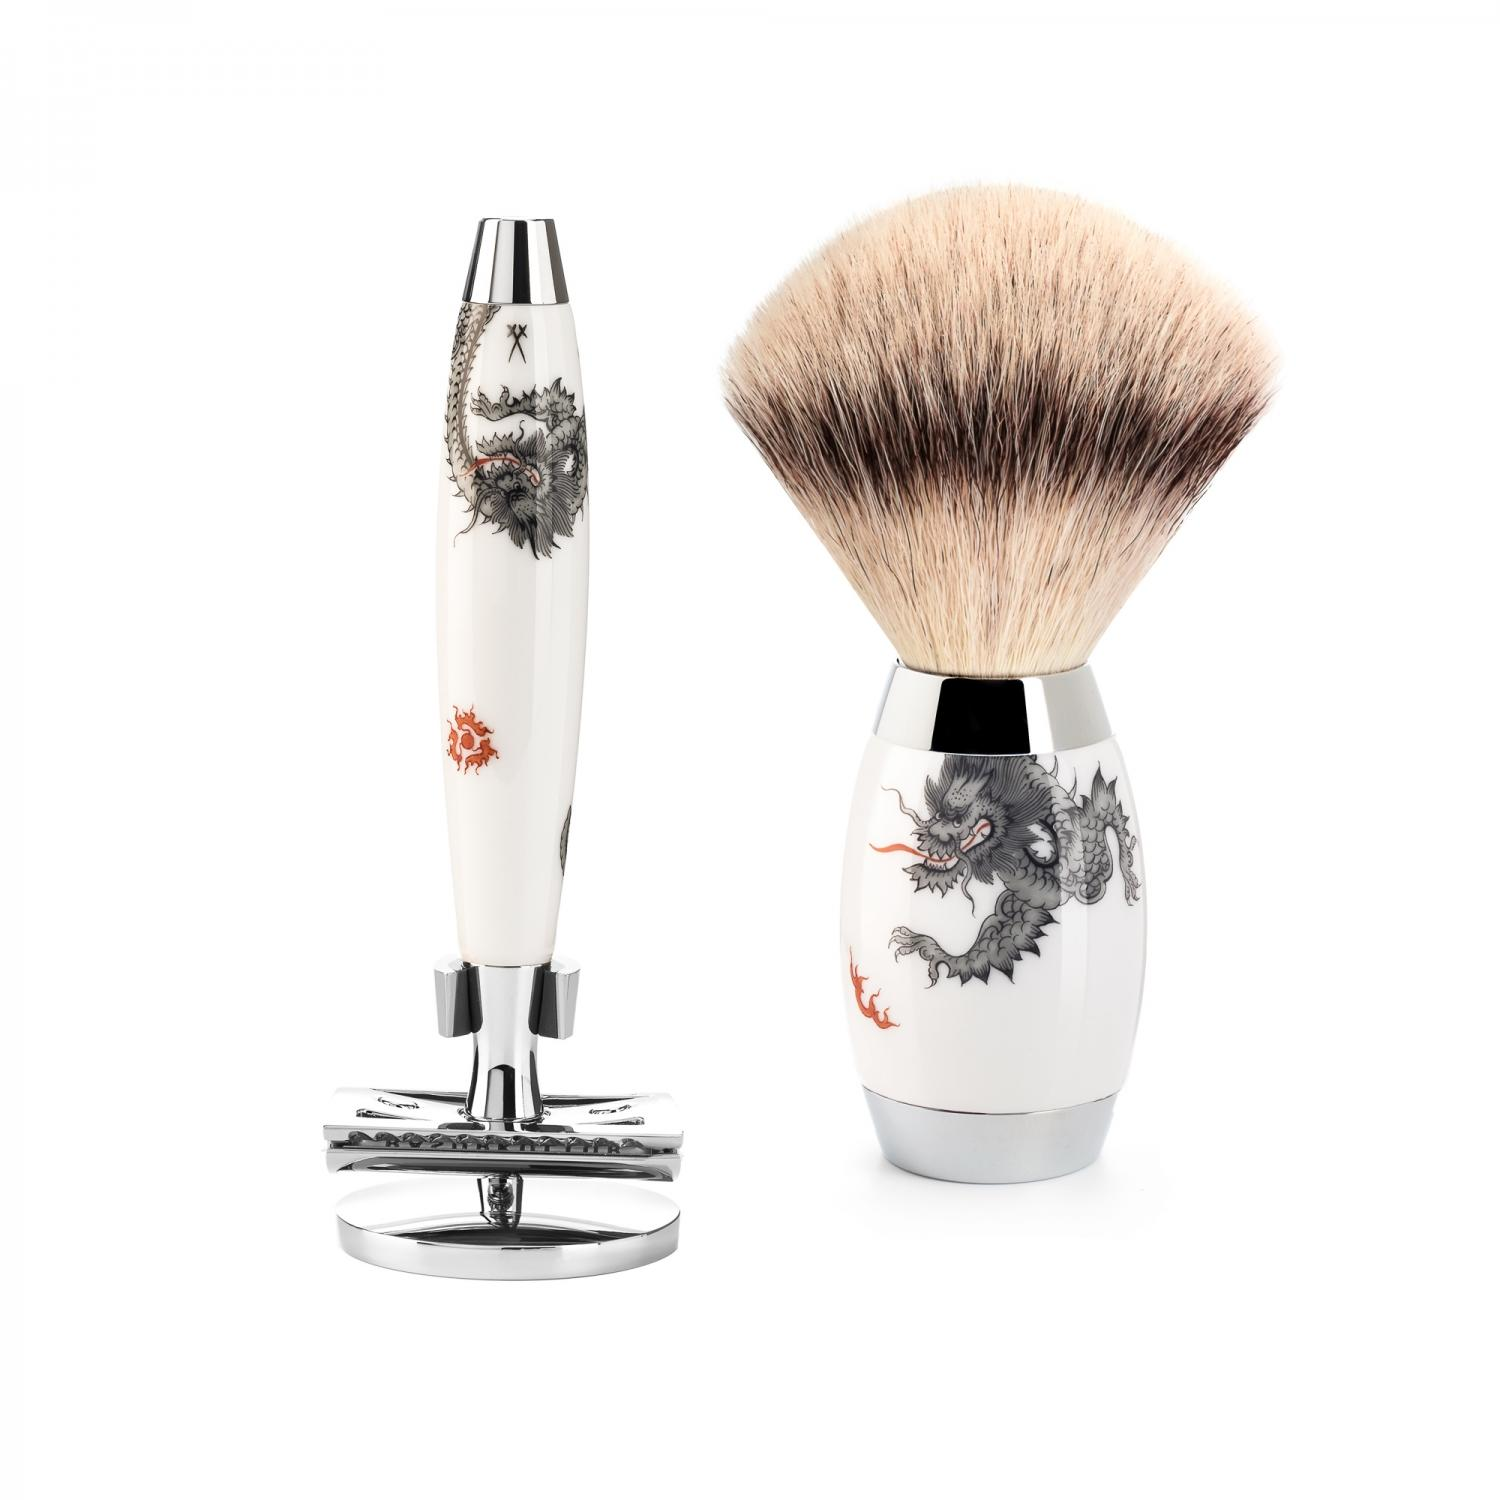 Meissen Porcelain Shaving Set from MUHLE